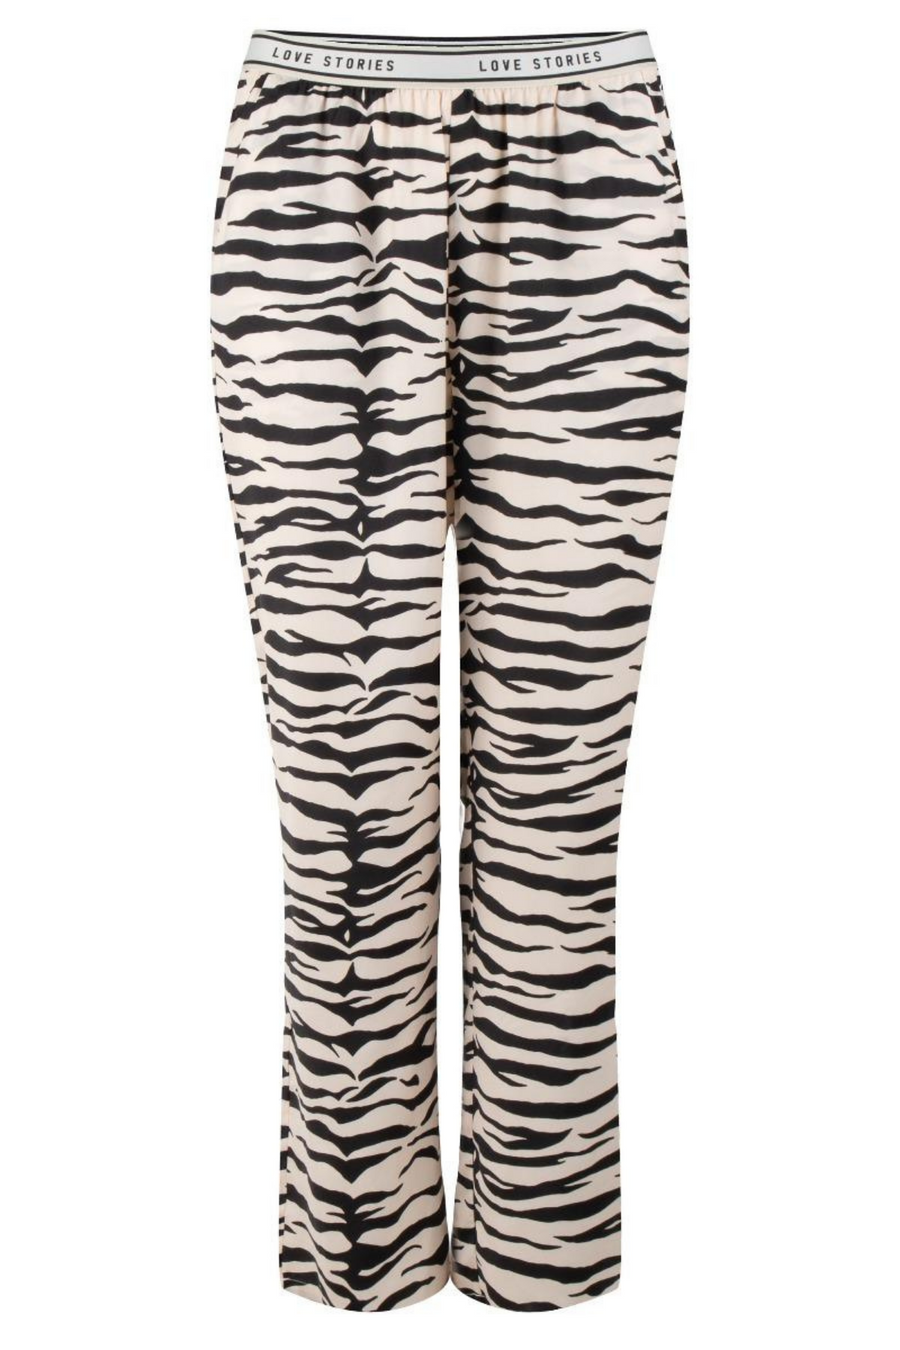 LOVE STORIES Weekend Pant